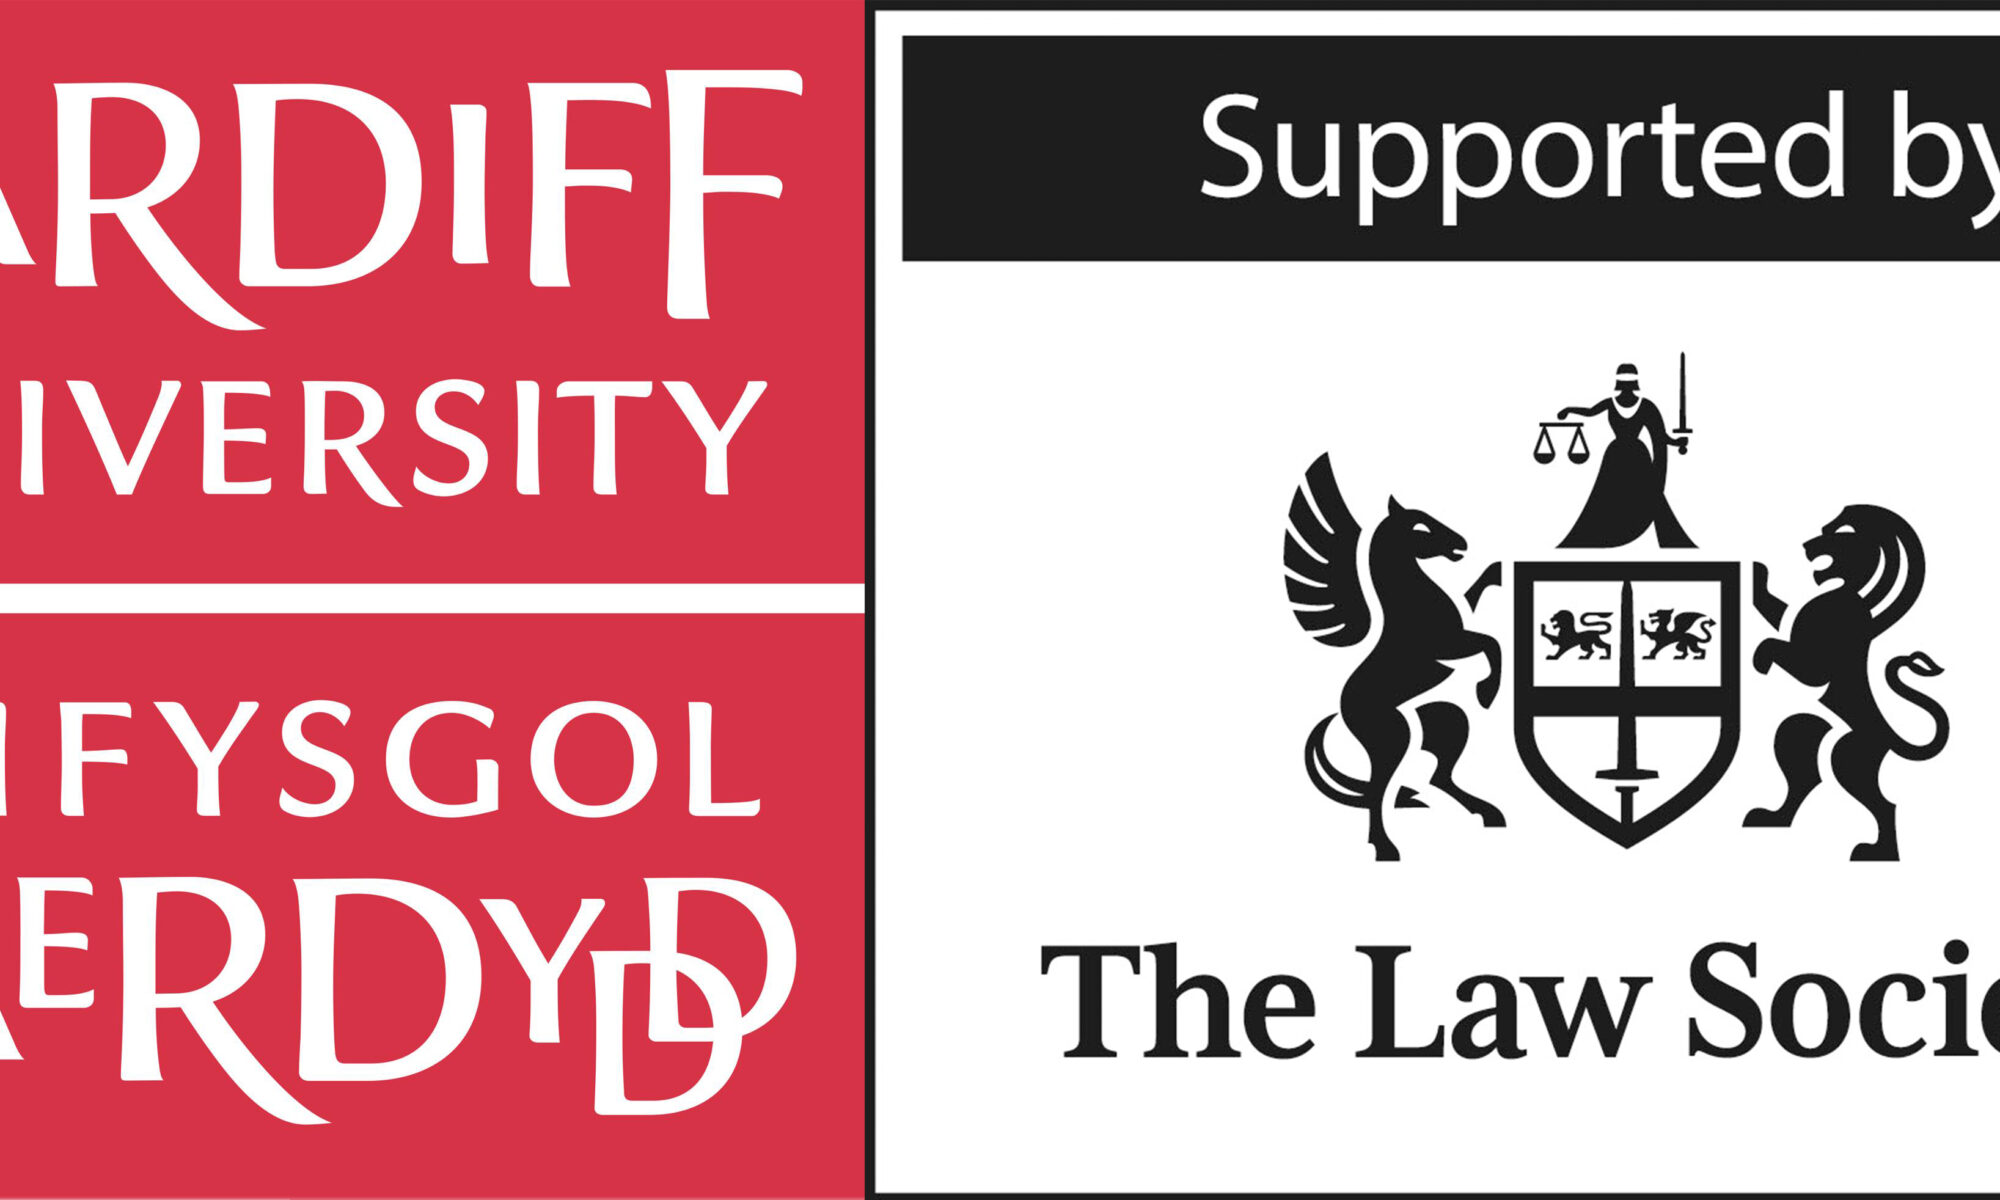 Cardiff University and The Law Society logos